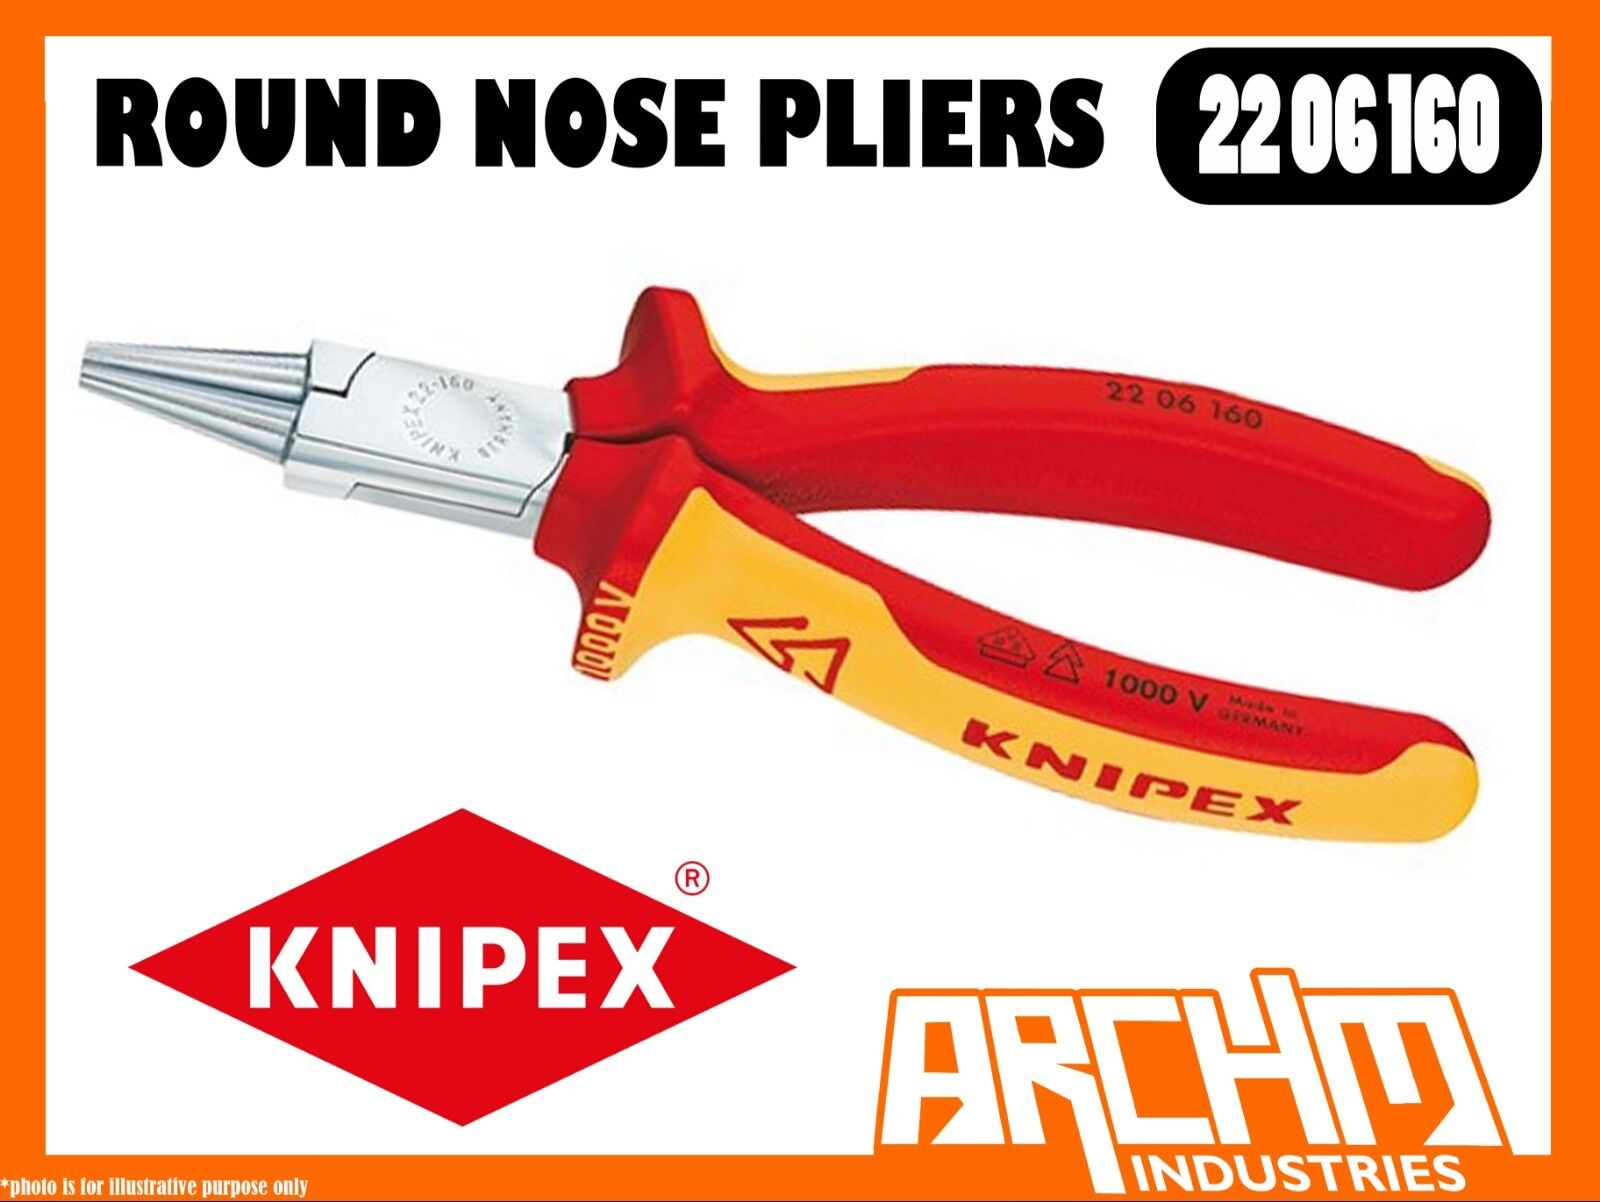 KNIPEX 2206160 - ROUND NOSE PLIERS 1000 VDE - 160MM GRIPPING WIRES BENDING STEEL